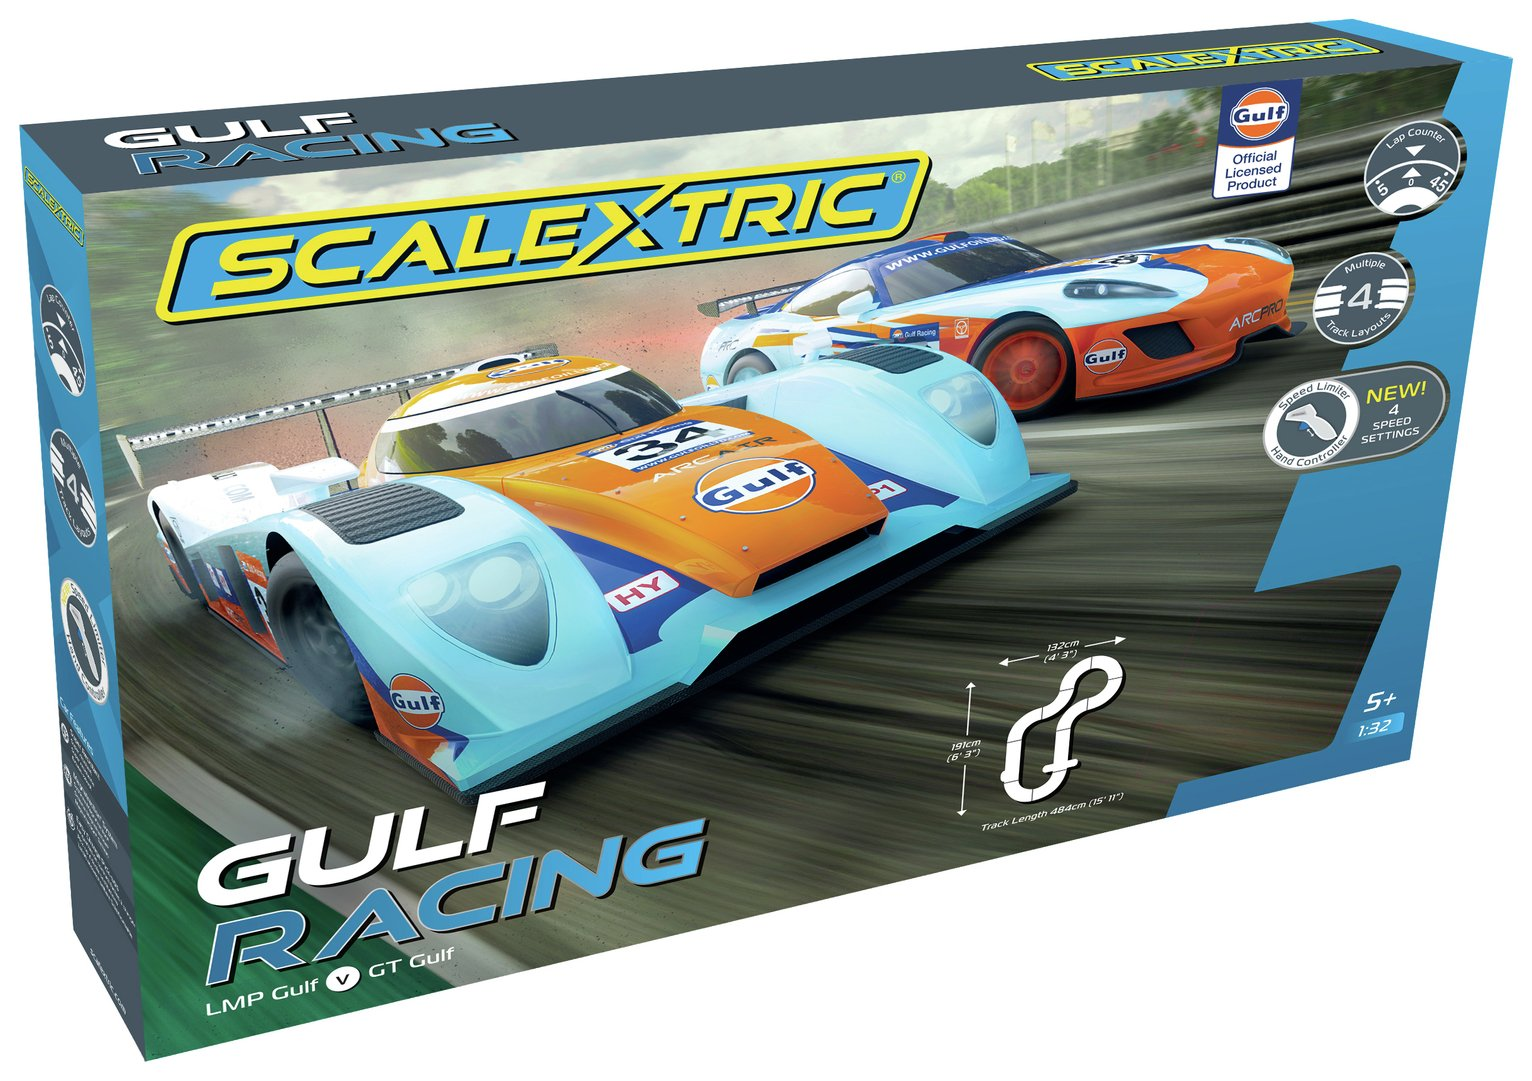 Scalextric Gulf Racing Playset